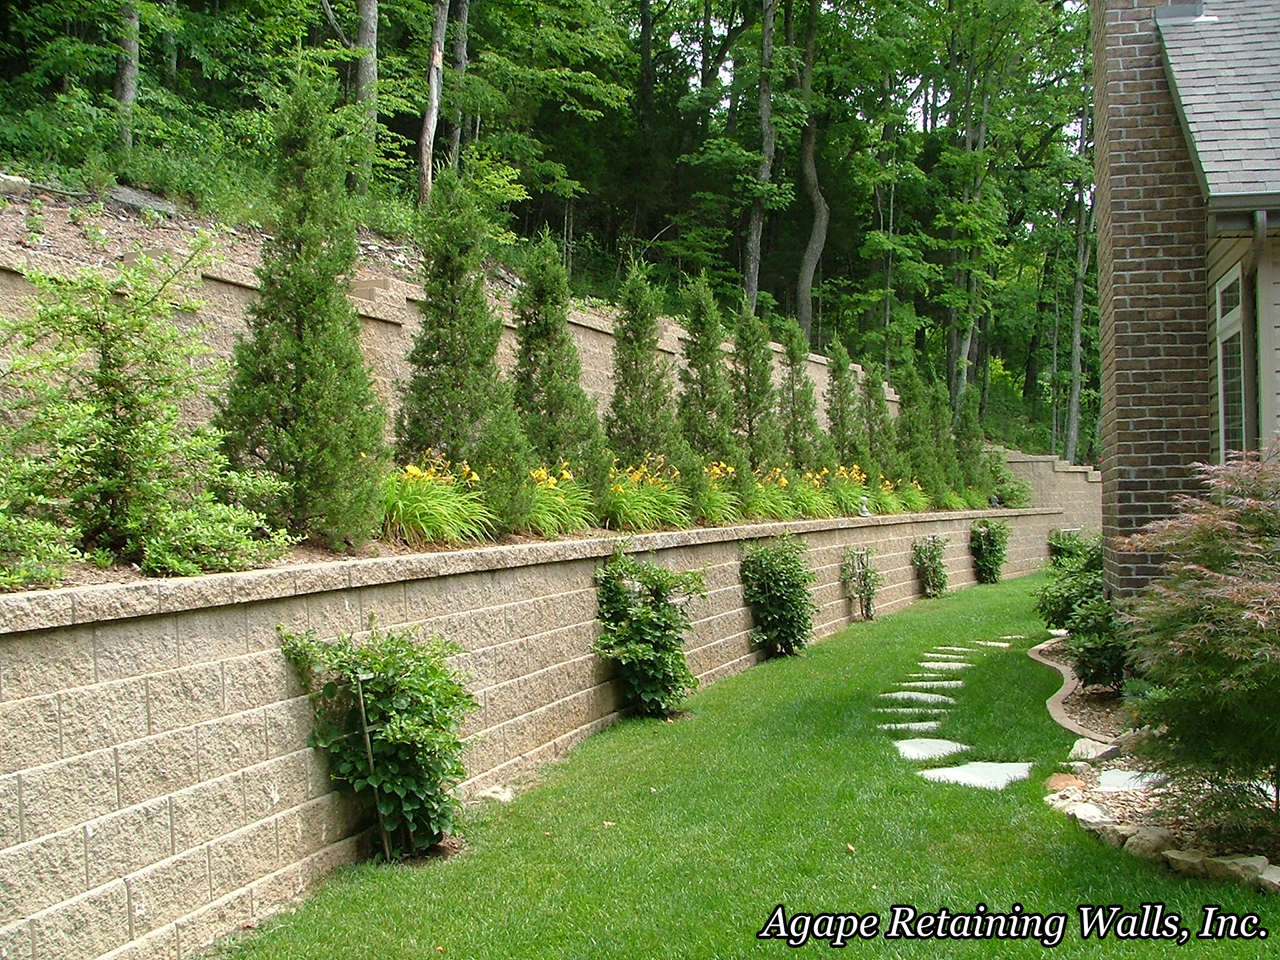 Agape retaining walls inc terrace photo album 2 for Garden wall designs